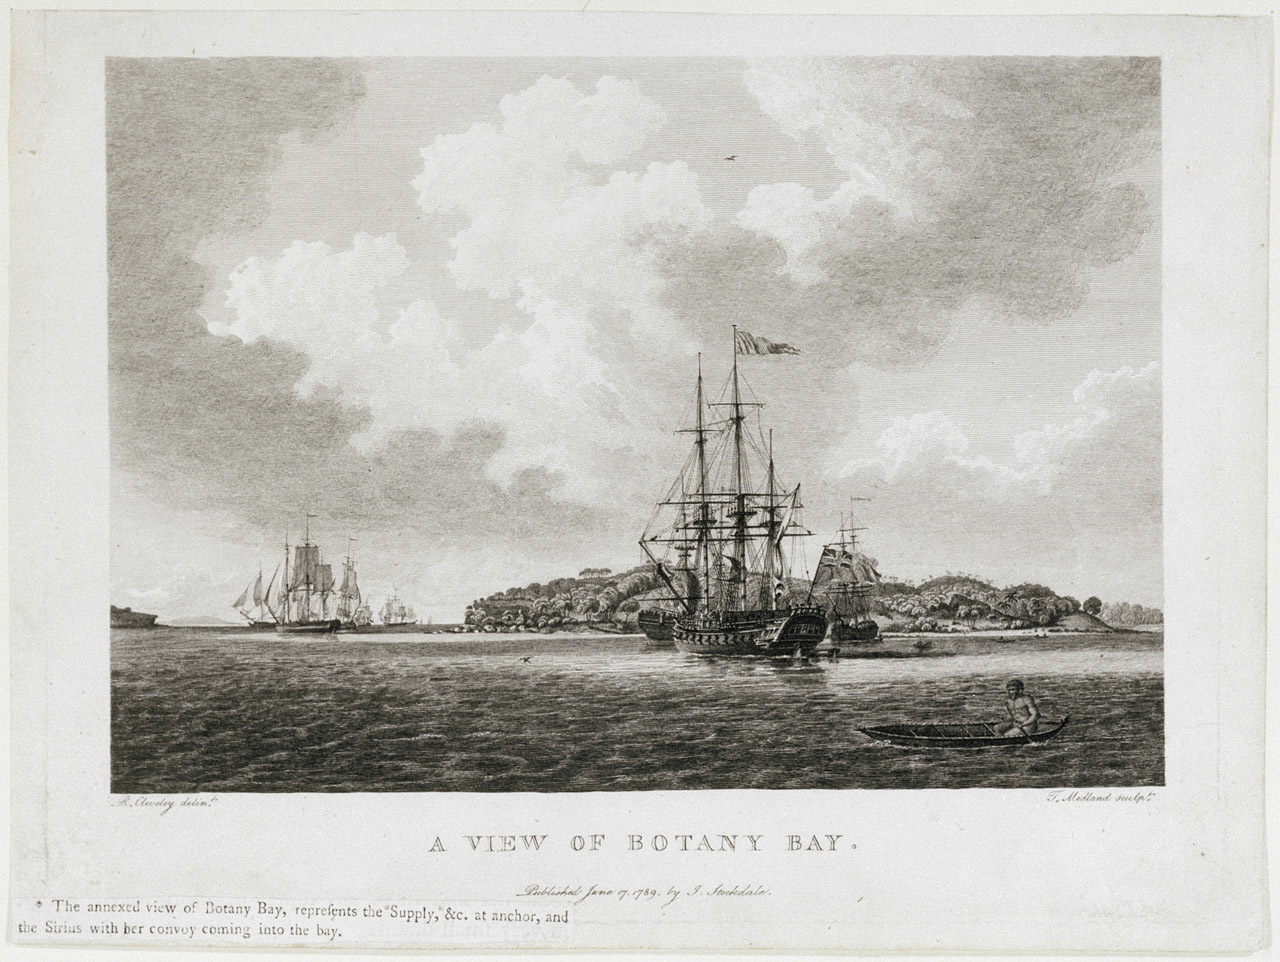 A print of a large sailing ship in foreground on sea, label reads A View of Botany Bay